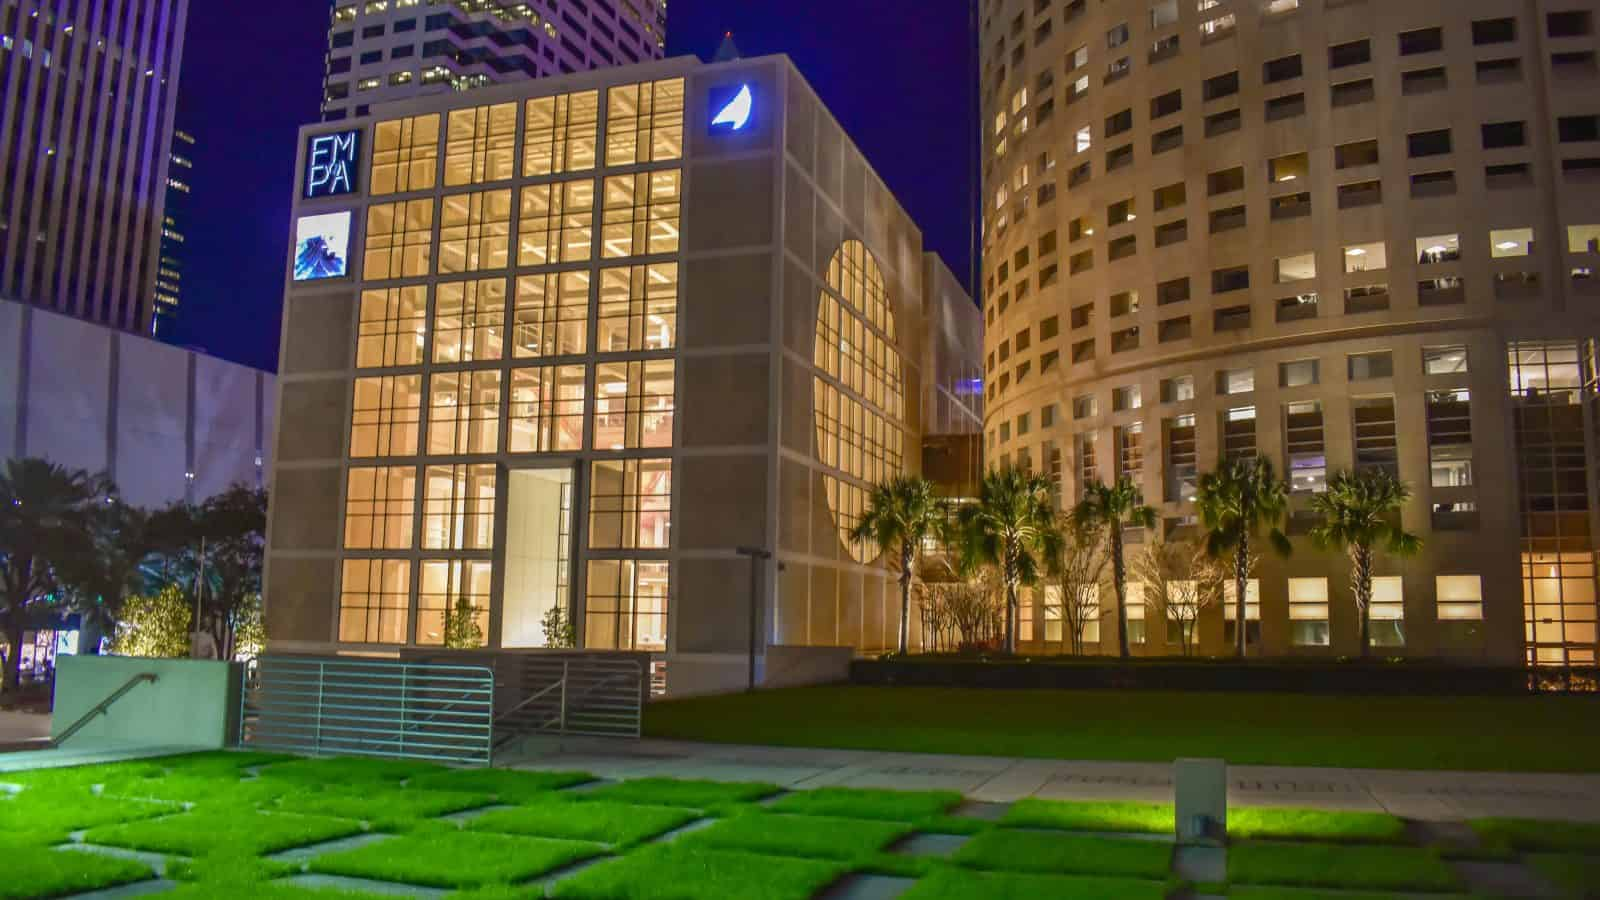 The Florida Museum of Photographic Art exterior with its grassy lawn.